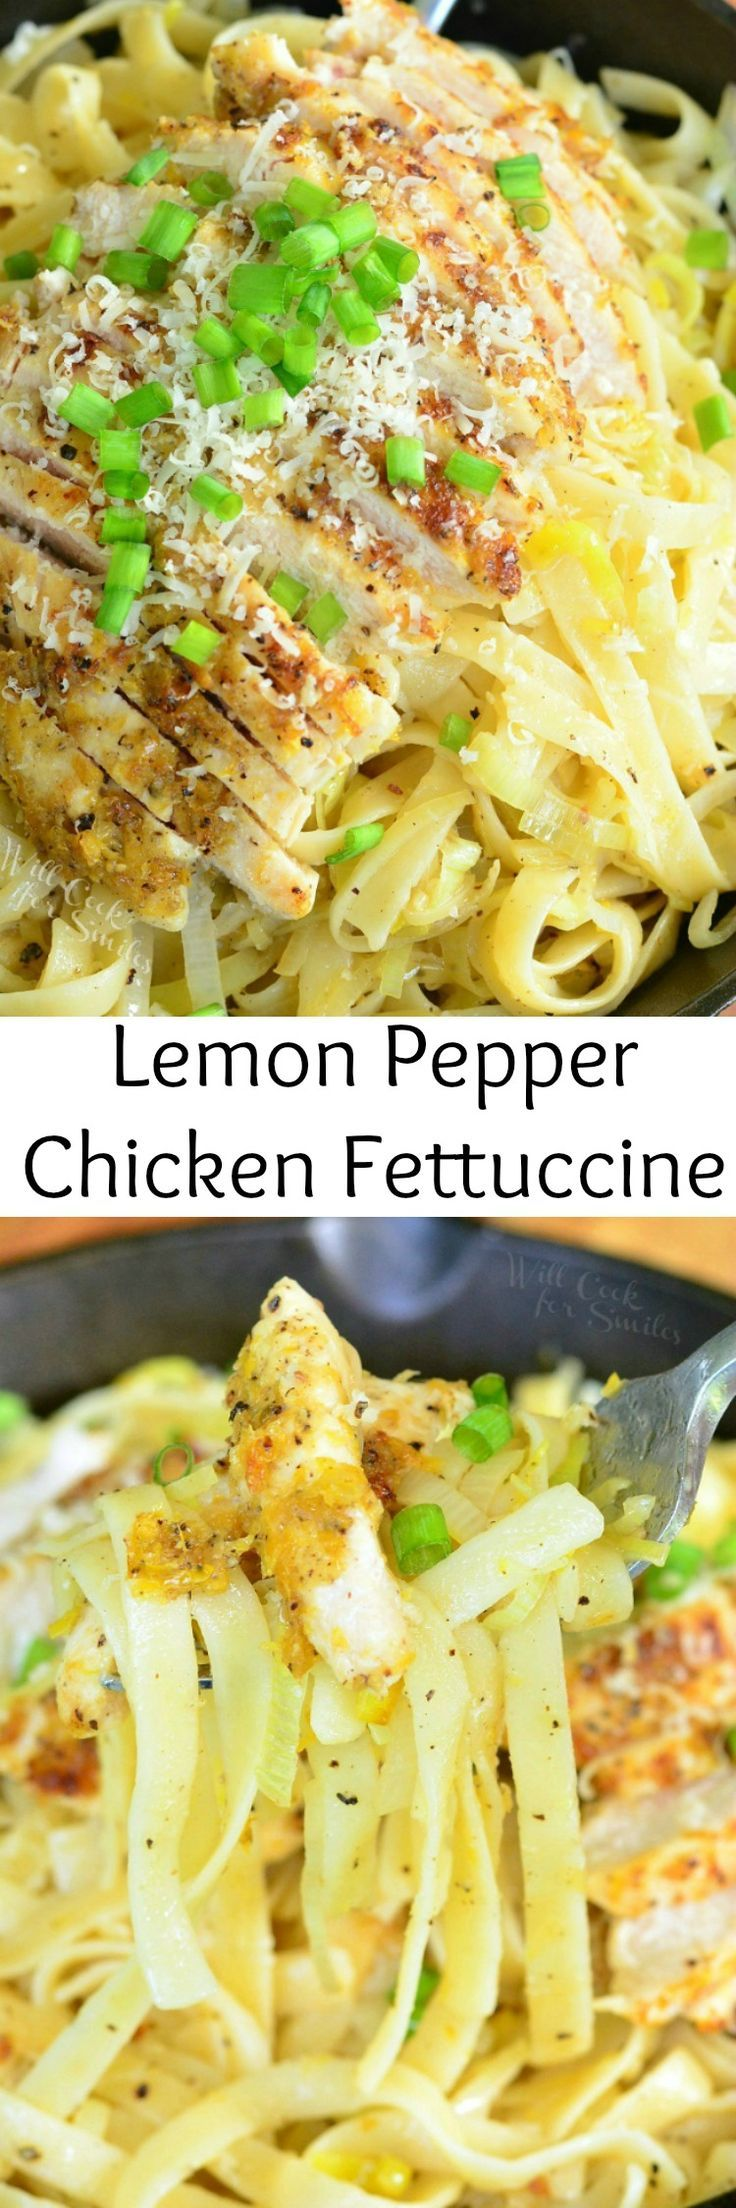 Lemon Pepper Chicken Fettuccine. Easy pasta dish that's so full of flavors, you can't stop eating it.